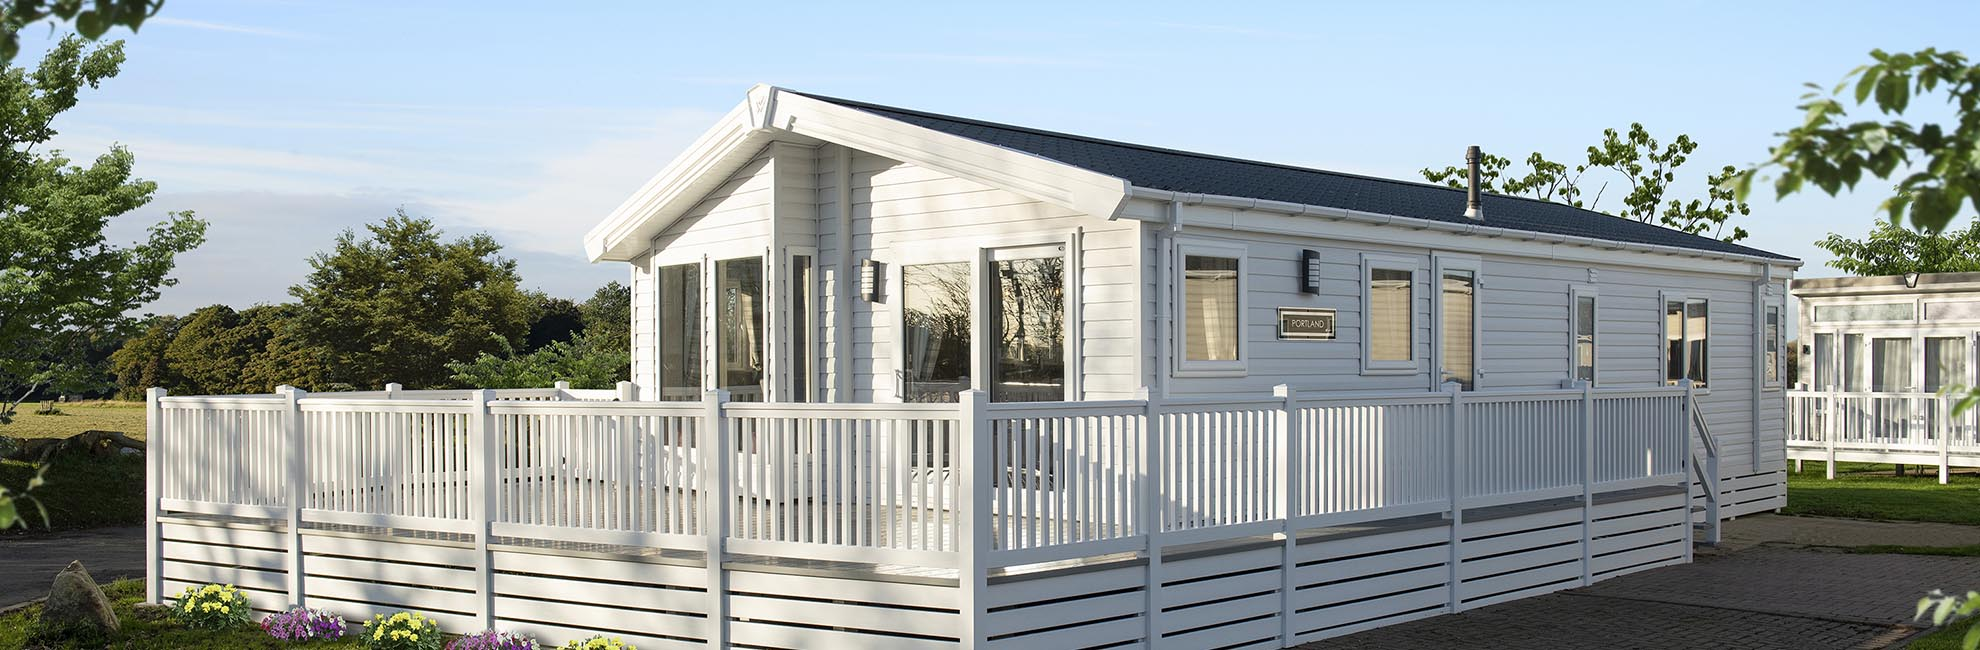 Luxury Lodges for Sale in the UK | Parkdean Resorts